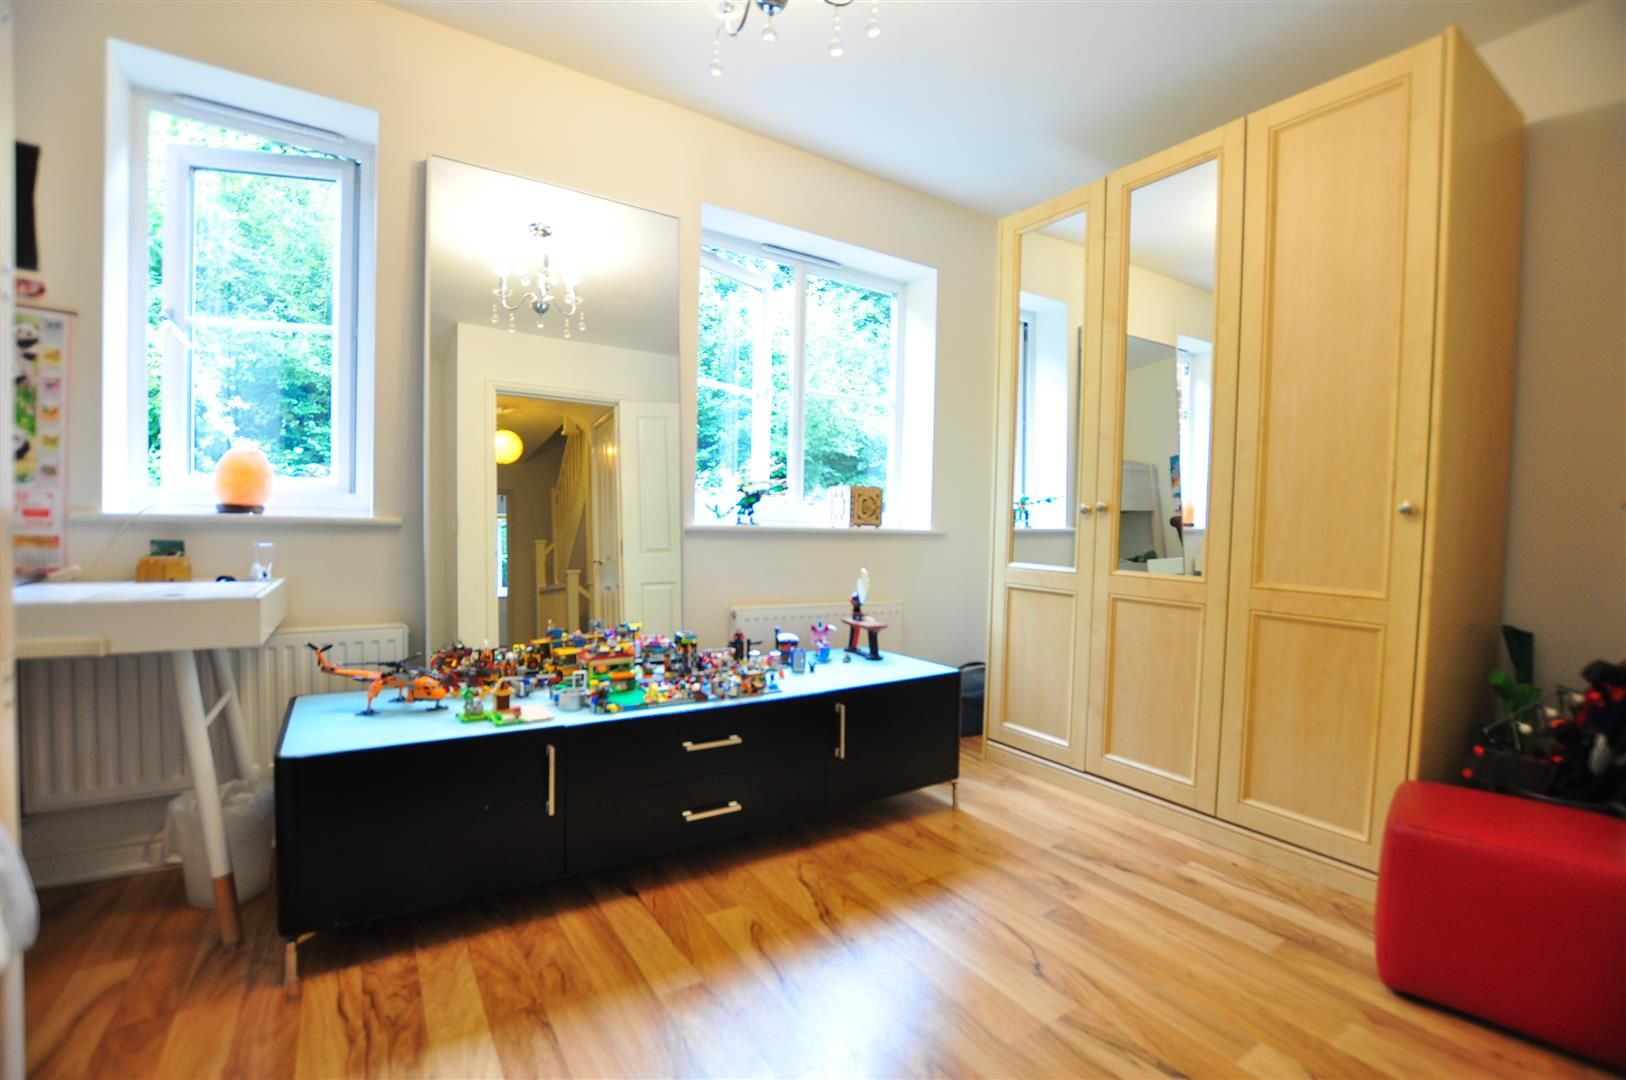 4 bed end-of-terrace for sale  - Property Image 12